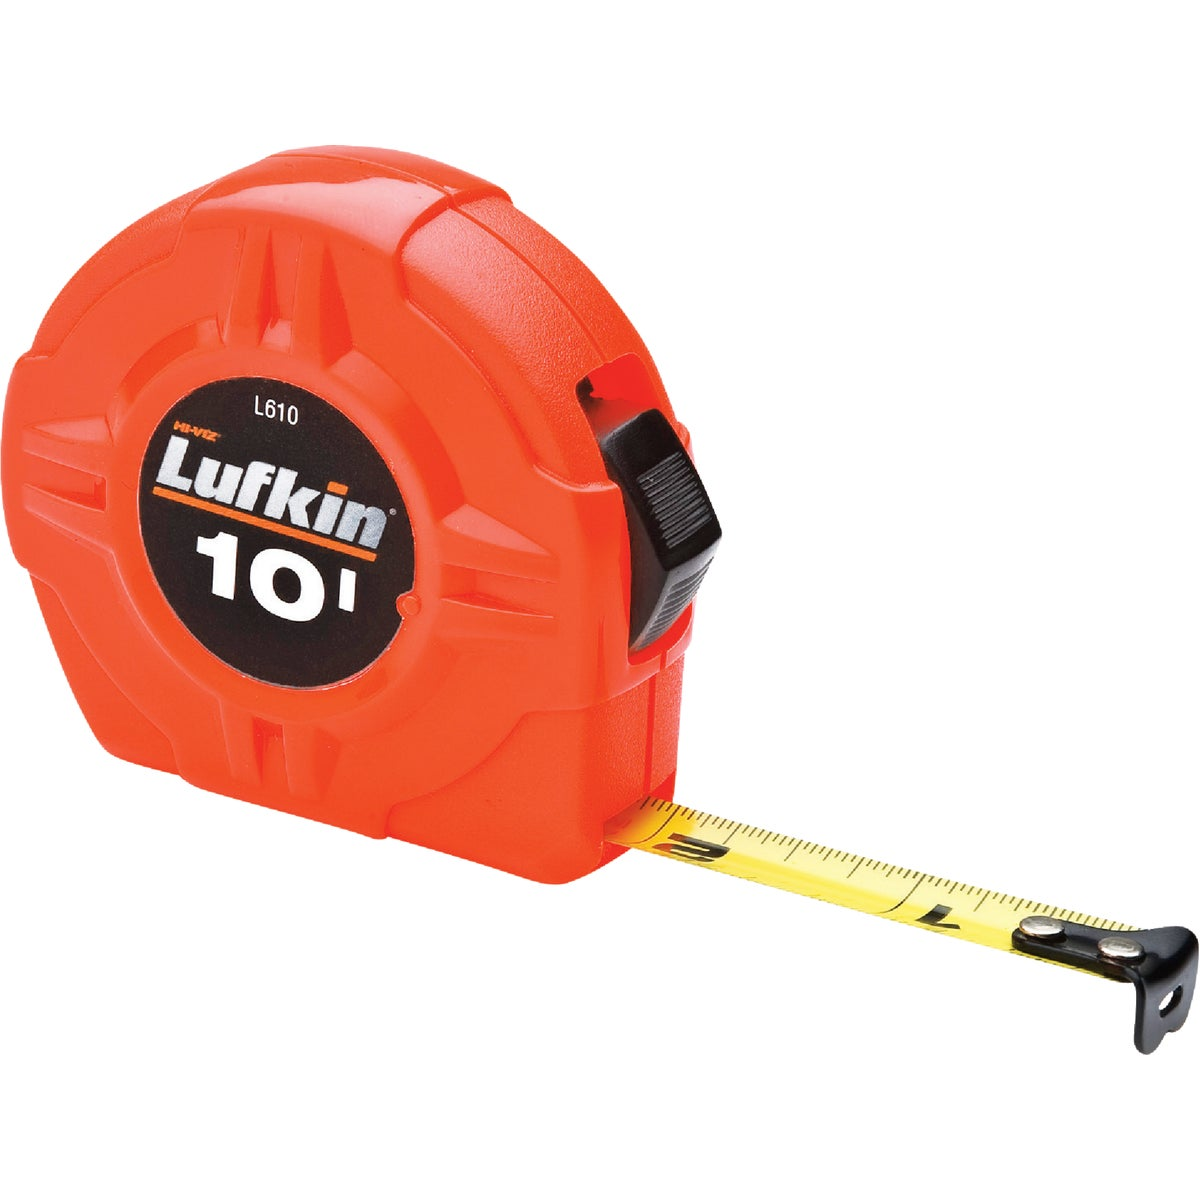 "1/2""X10' TAPE RULE - L610 by Apex Tool Group"